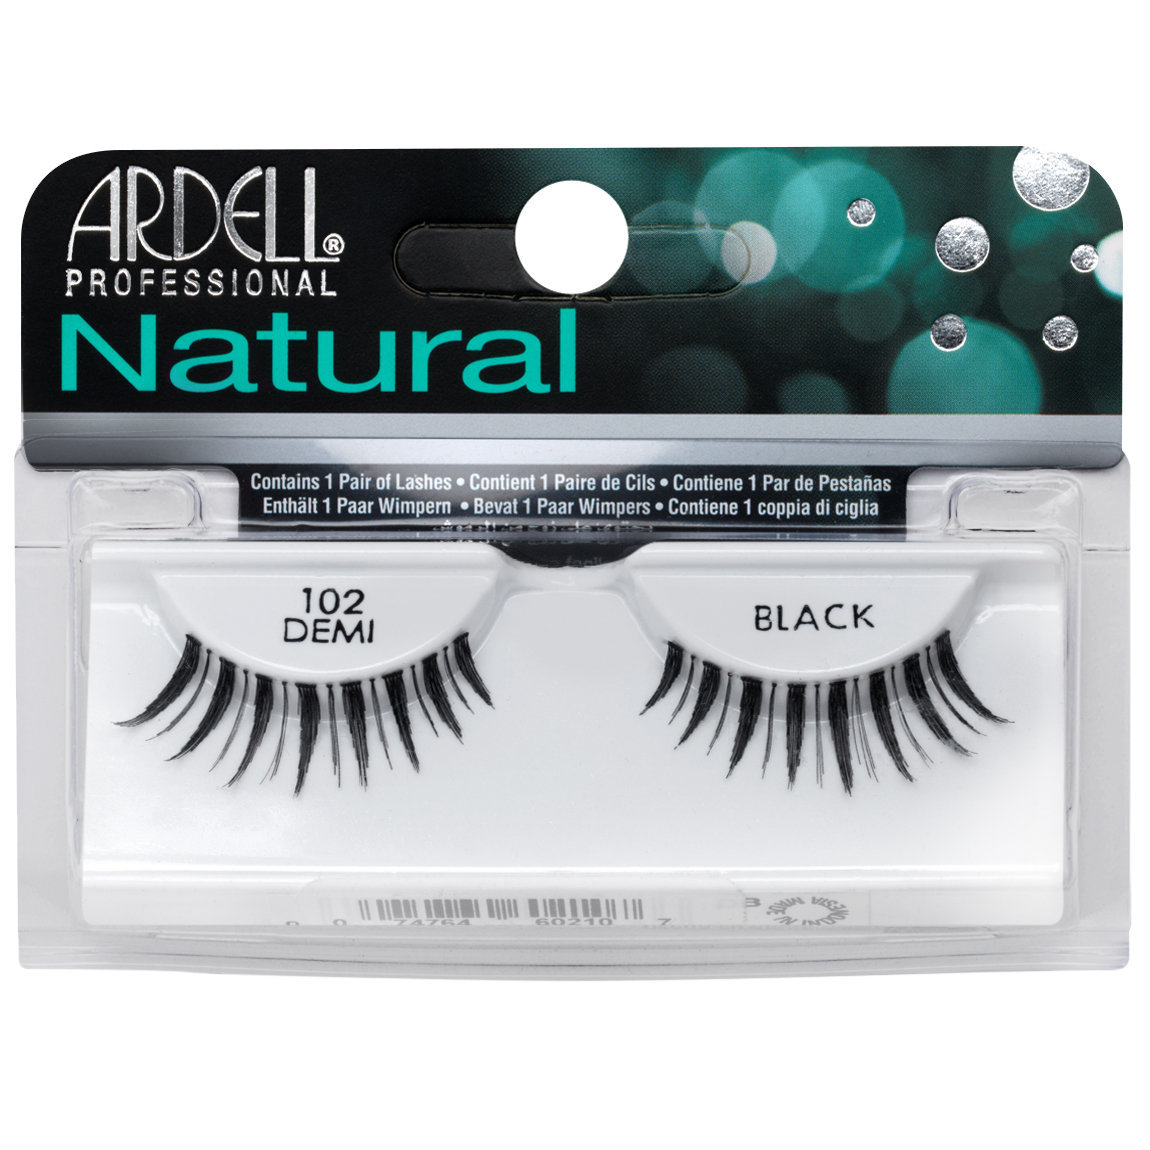 Ardell Natural Lashes 102 Demi Black alternative view 1.